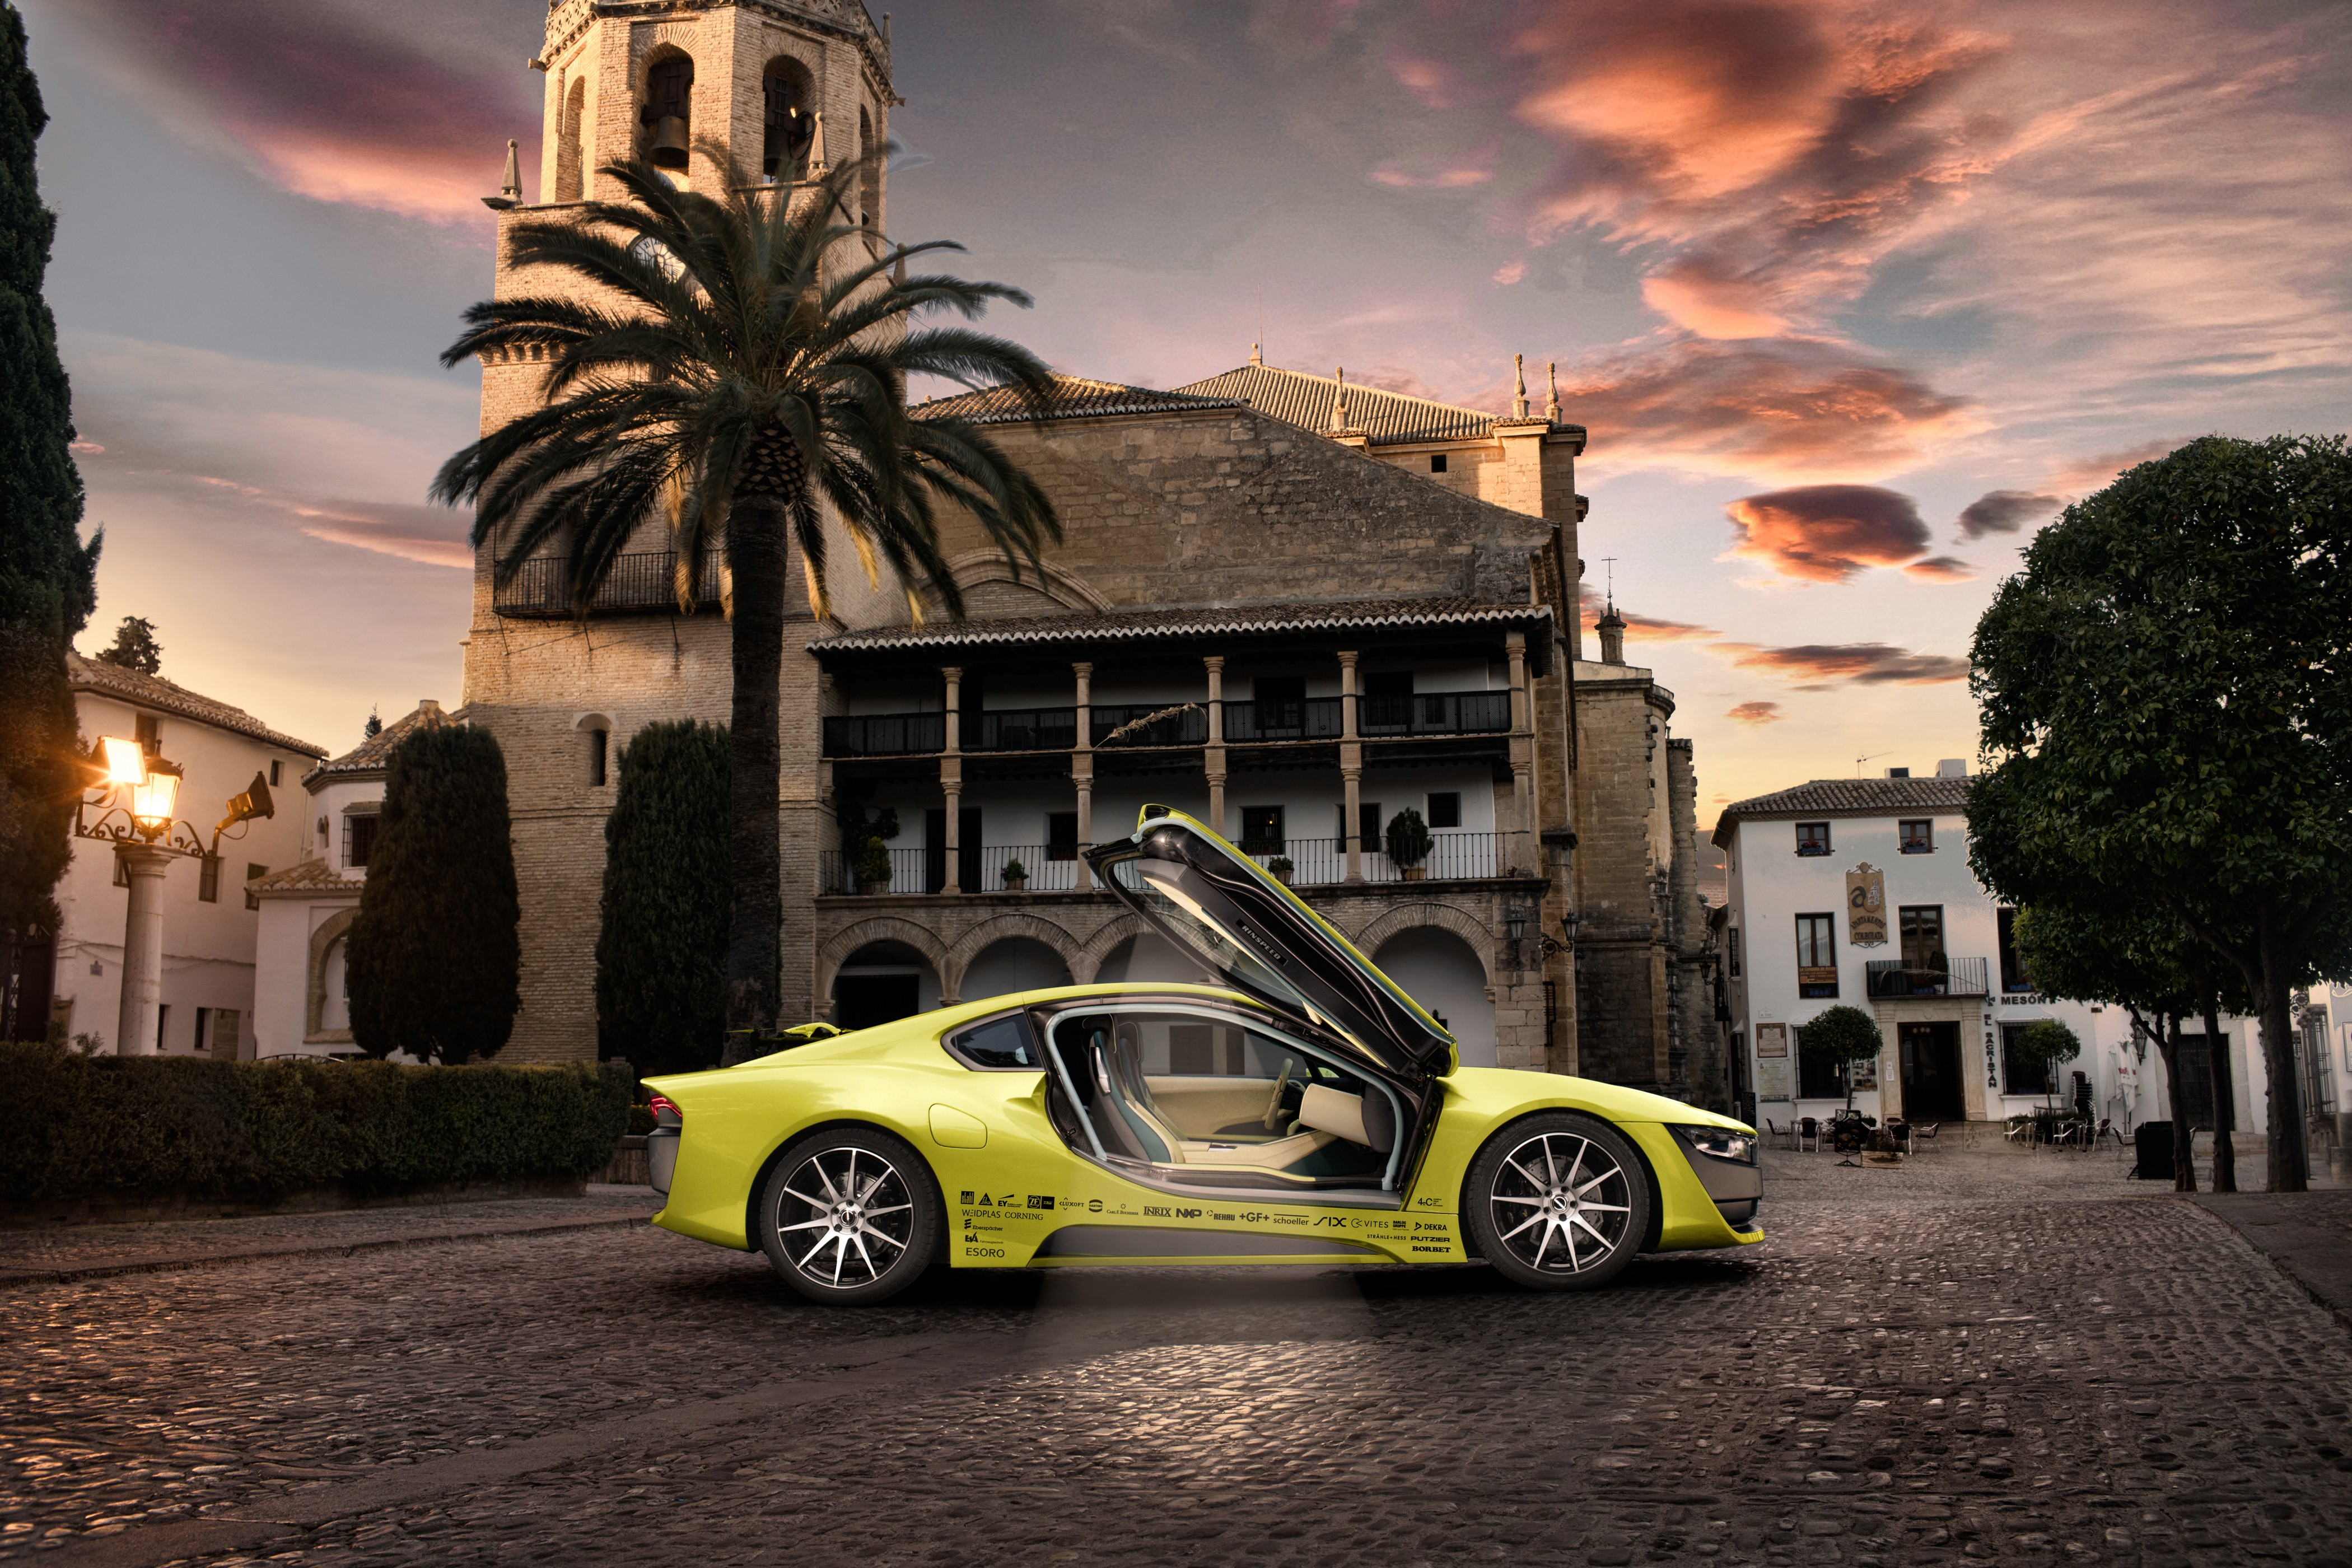 Wallpaper rinspeed etos ces 2016 electric car yellow for Wallpaper home 2016